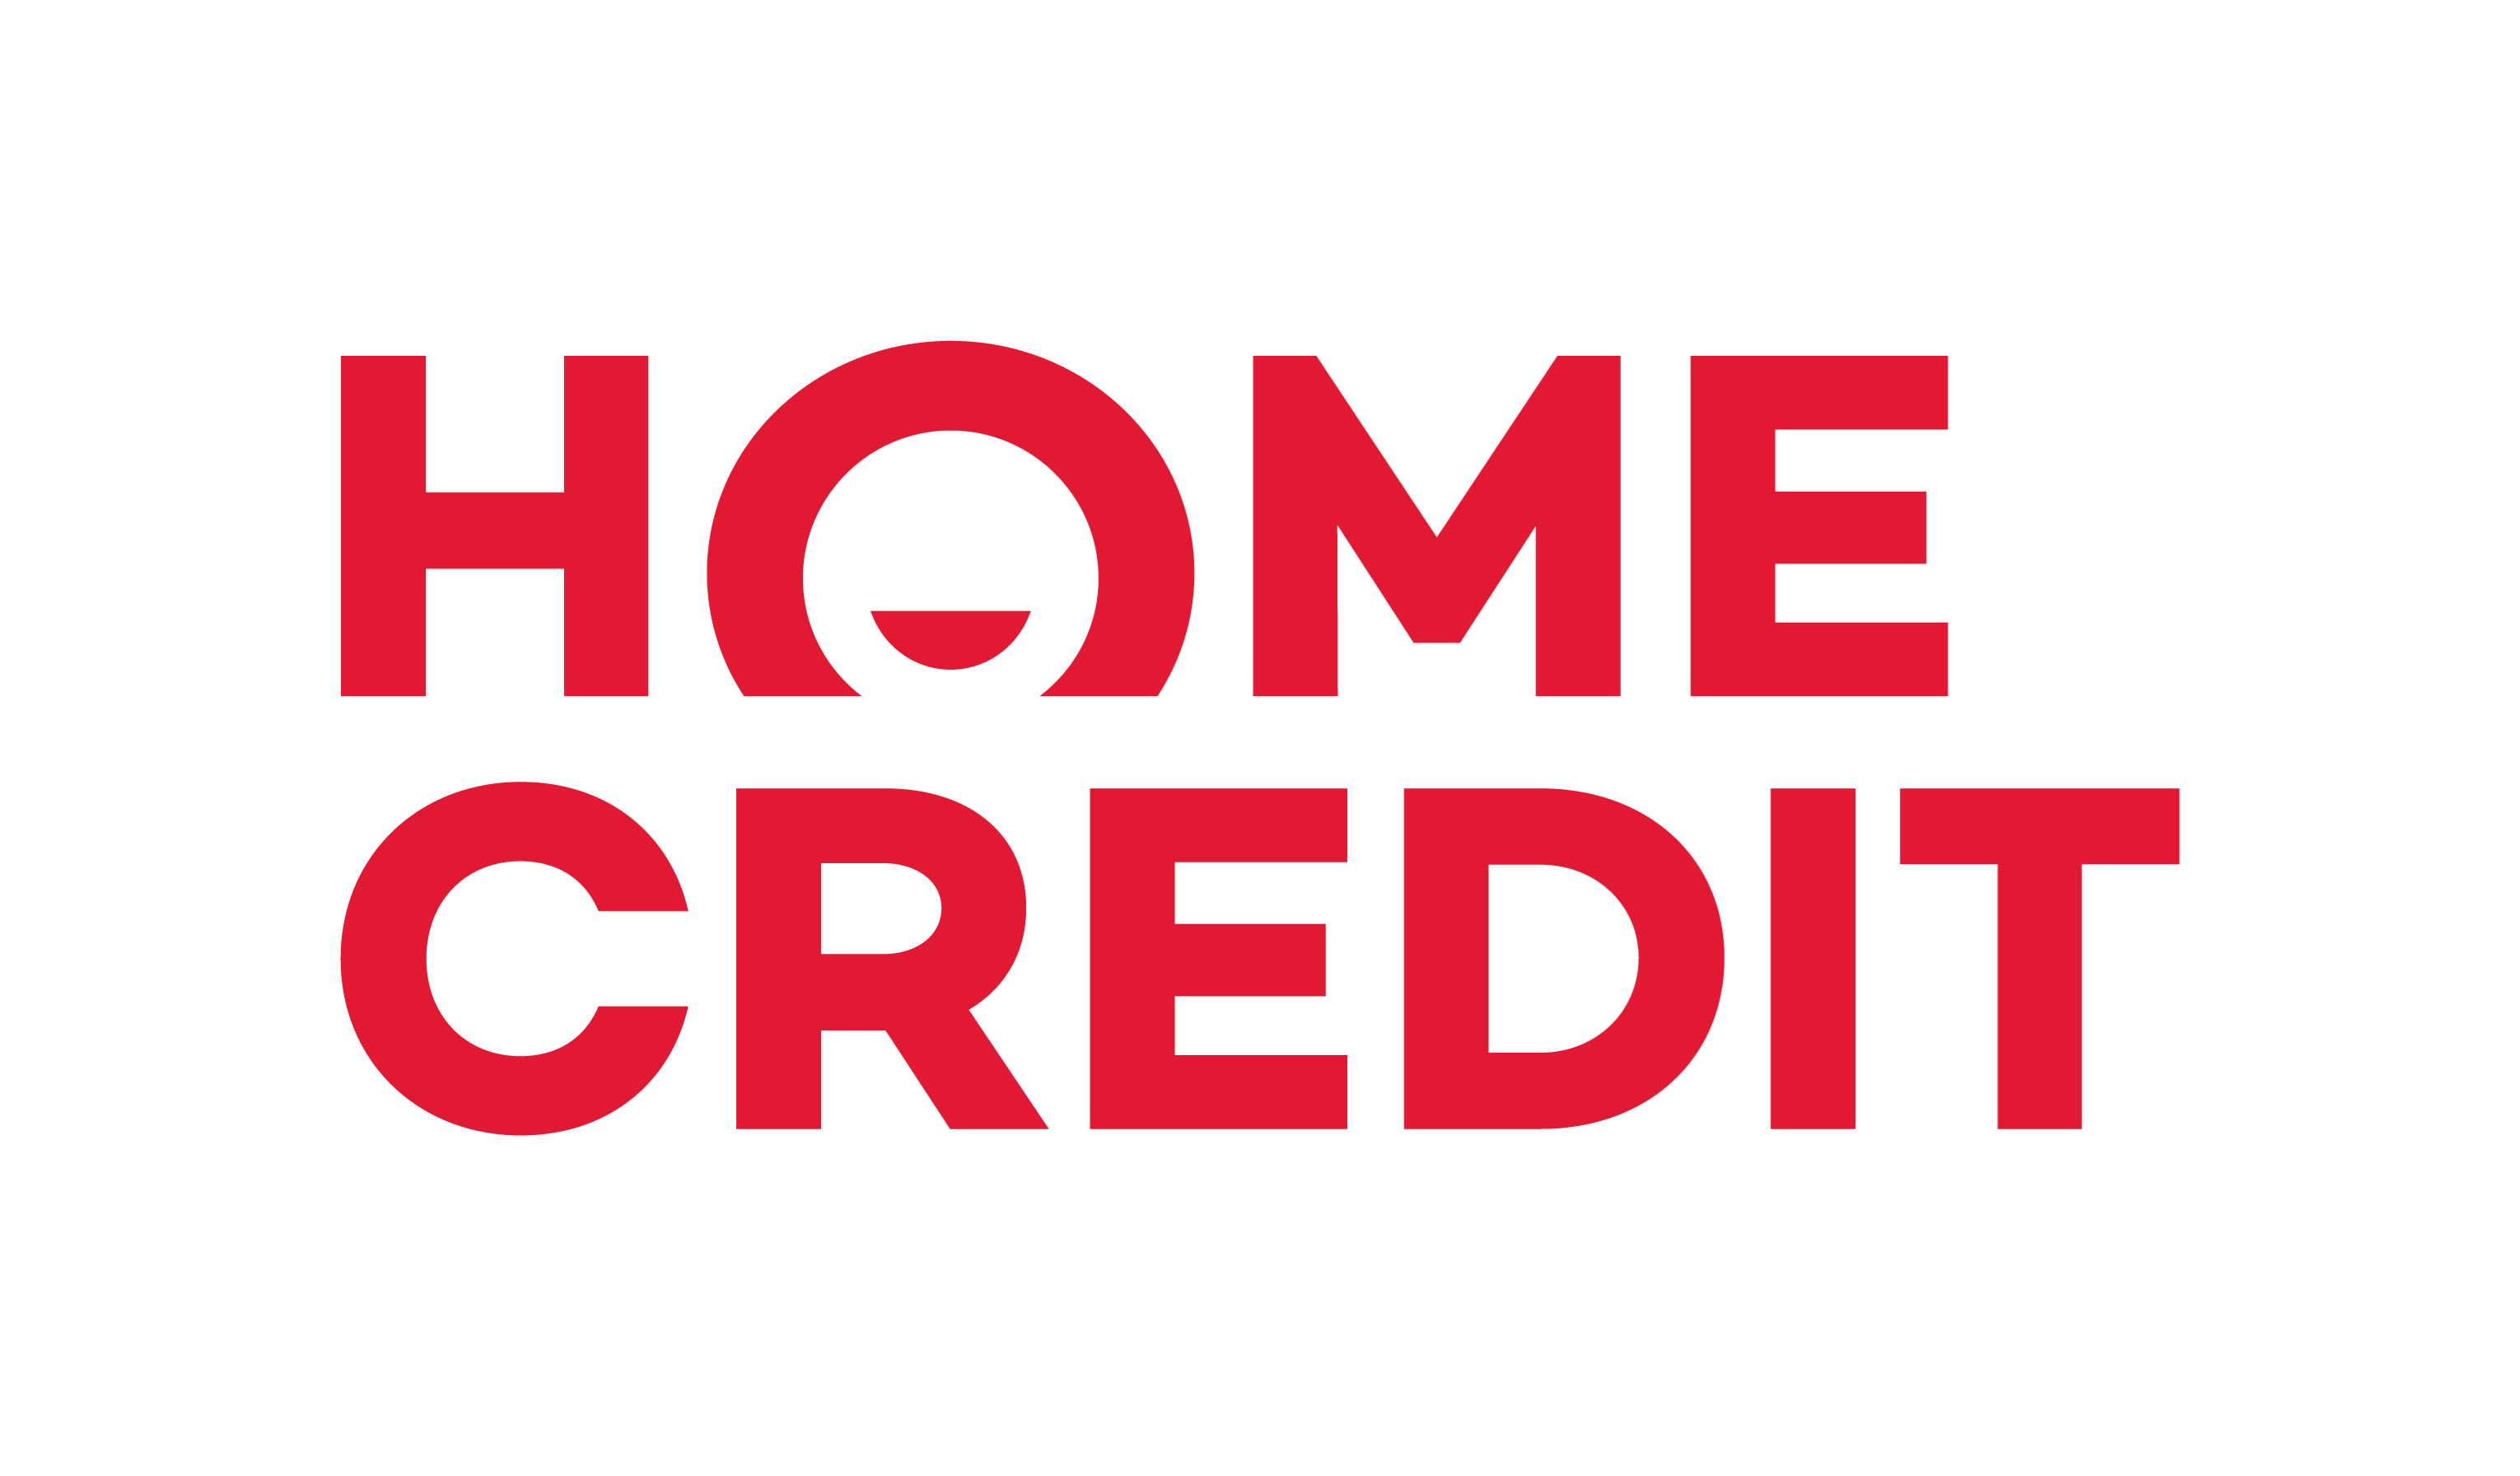 Home Credit Indonesia (Recruitment Page for MARKETING & STRATEGY team)